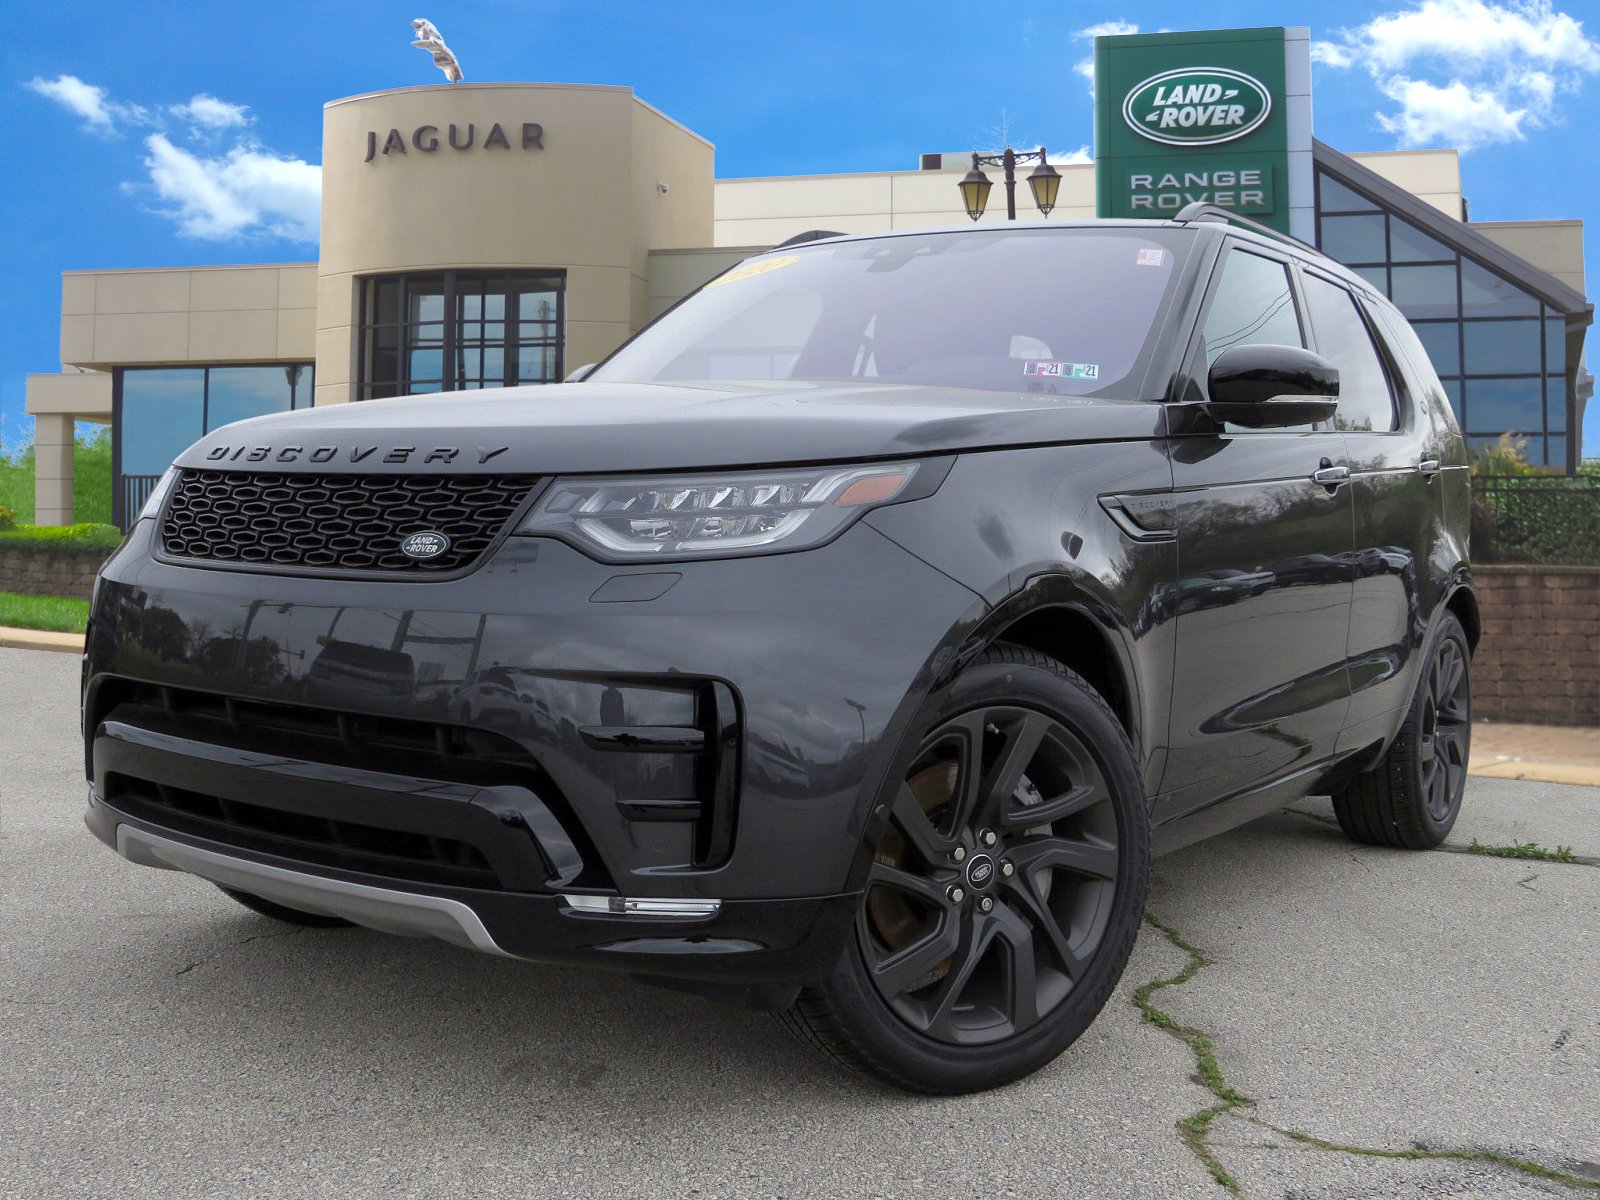 Land Rover Lease Deals Range Rover Offers Special Pricing Willow Grove